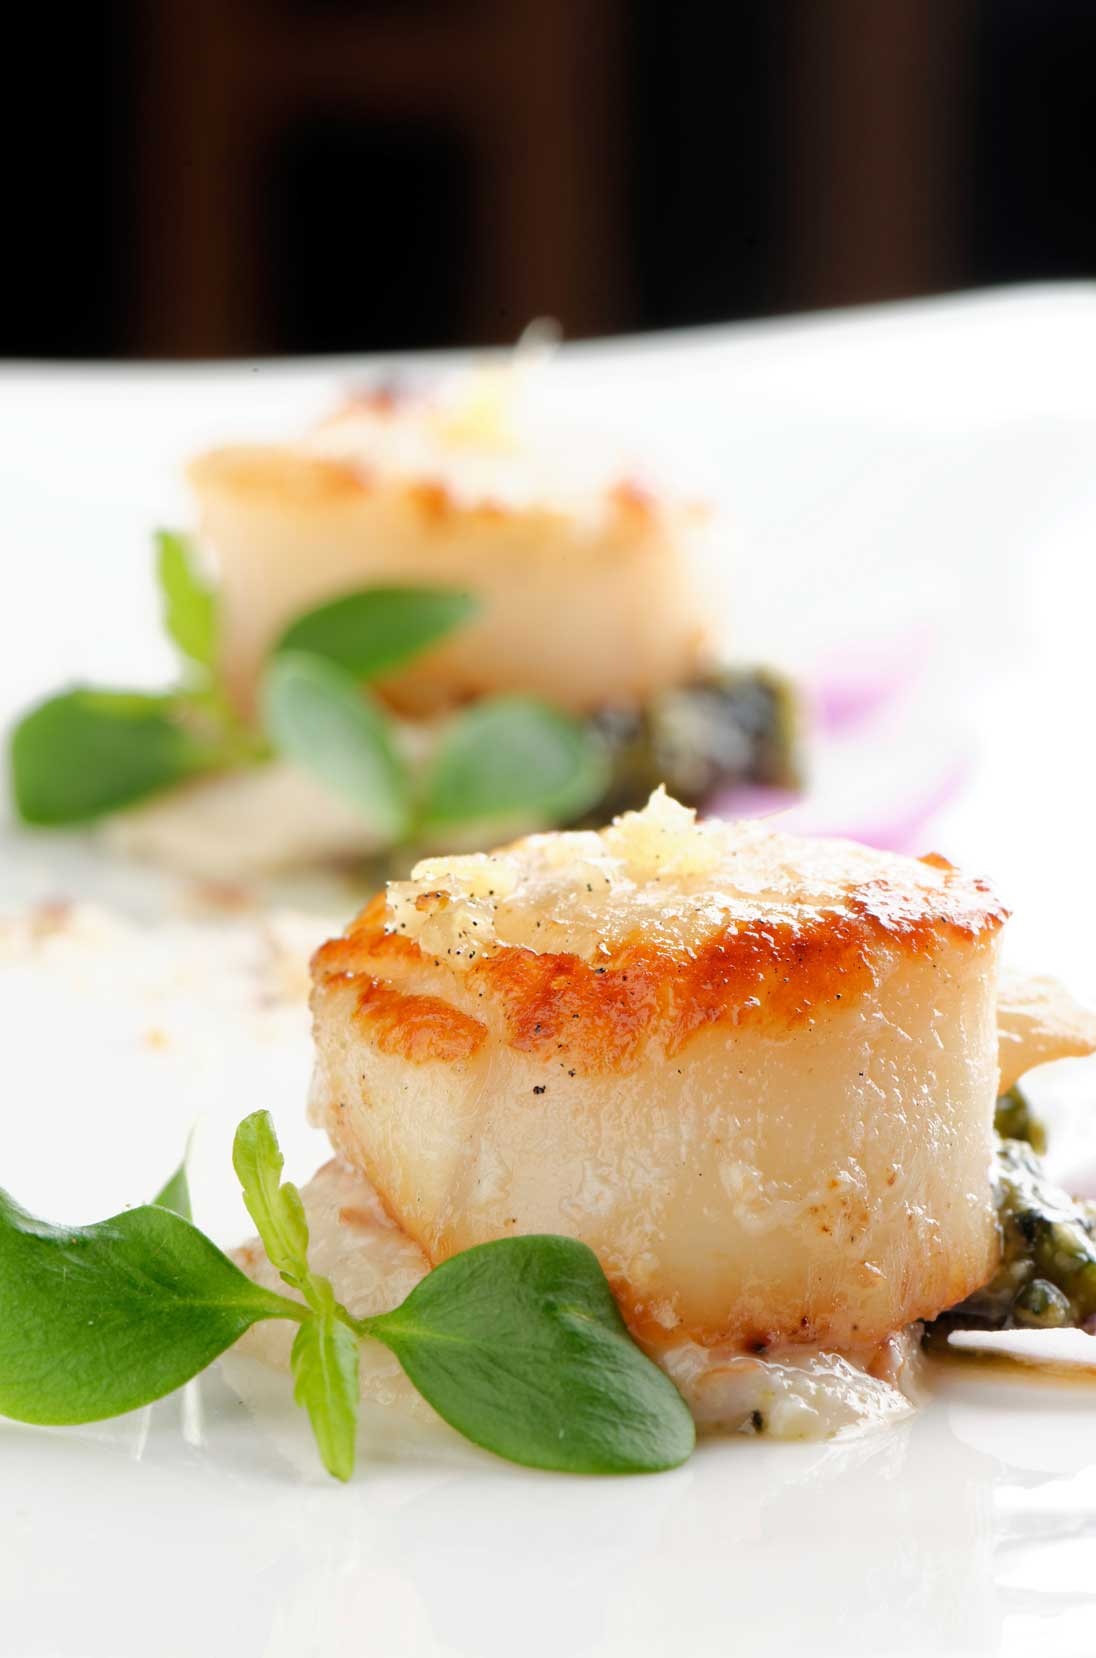 Pan-seared diver-harvested sea scallops are a highlight of our dinner menu.